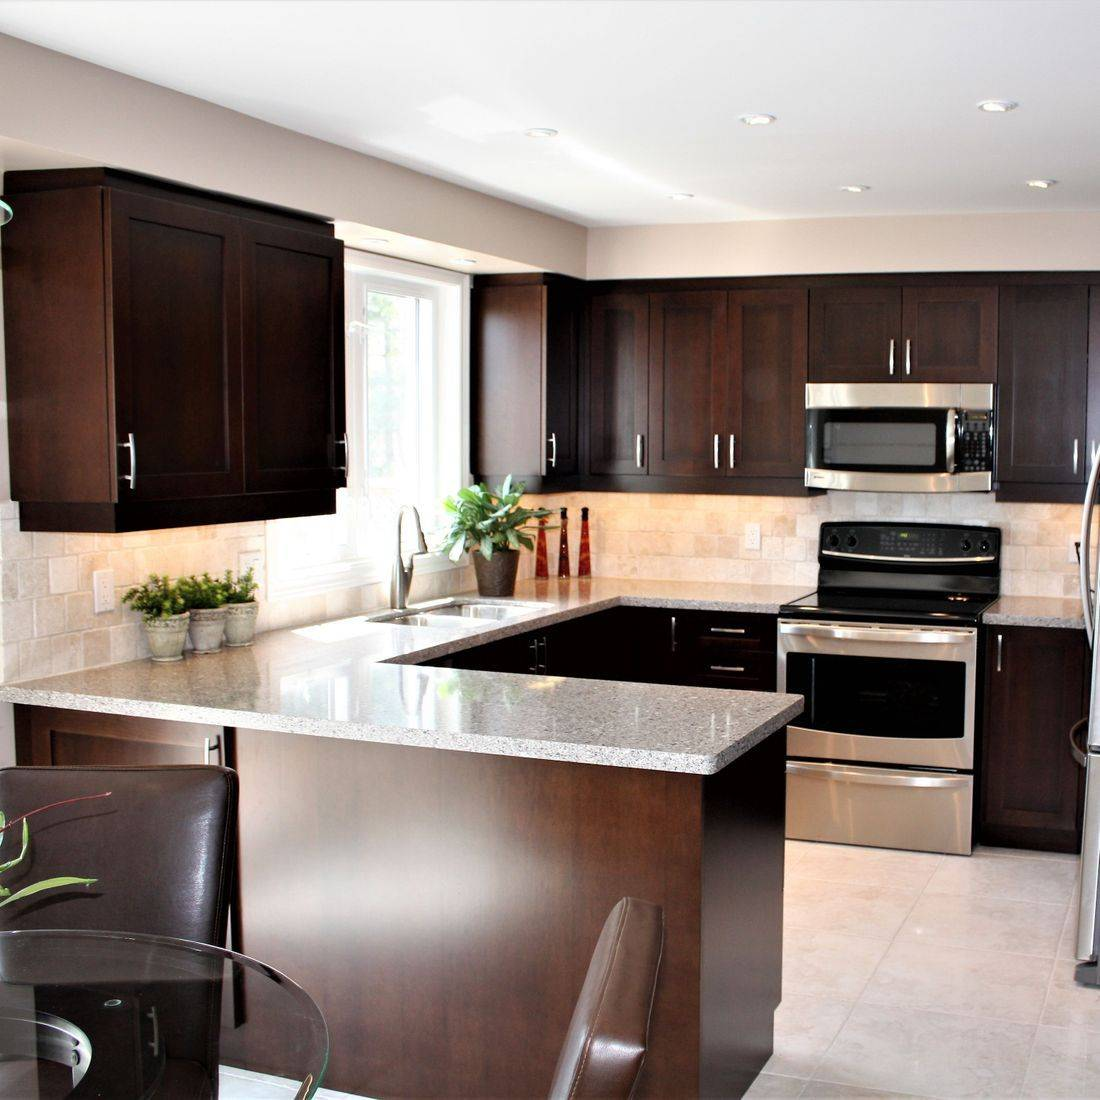 Sibra Kitchens Markham Toronto quartz counter maple shaker cabinets